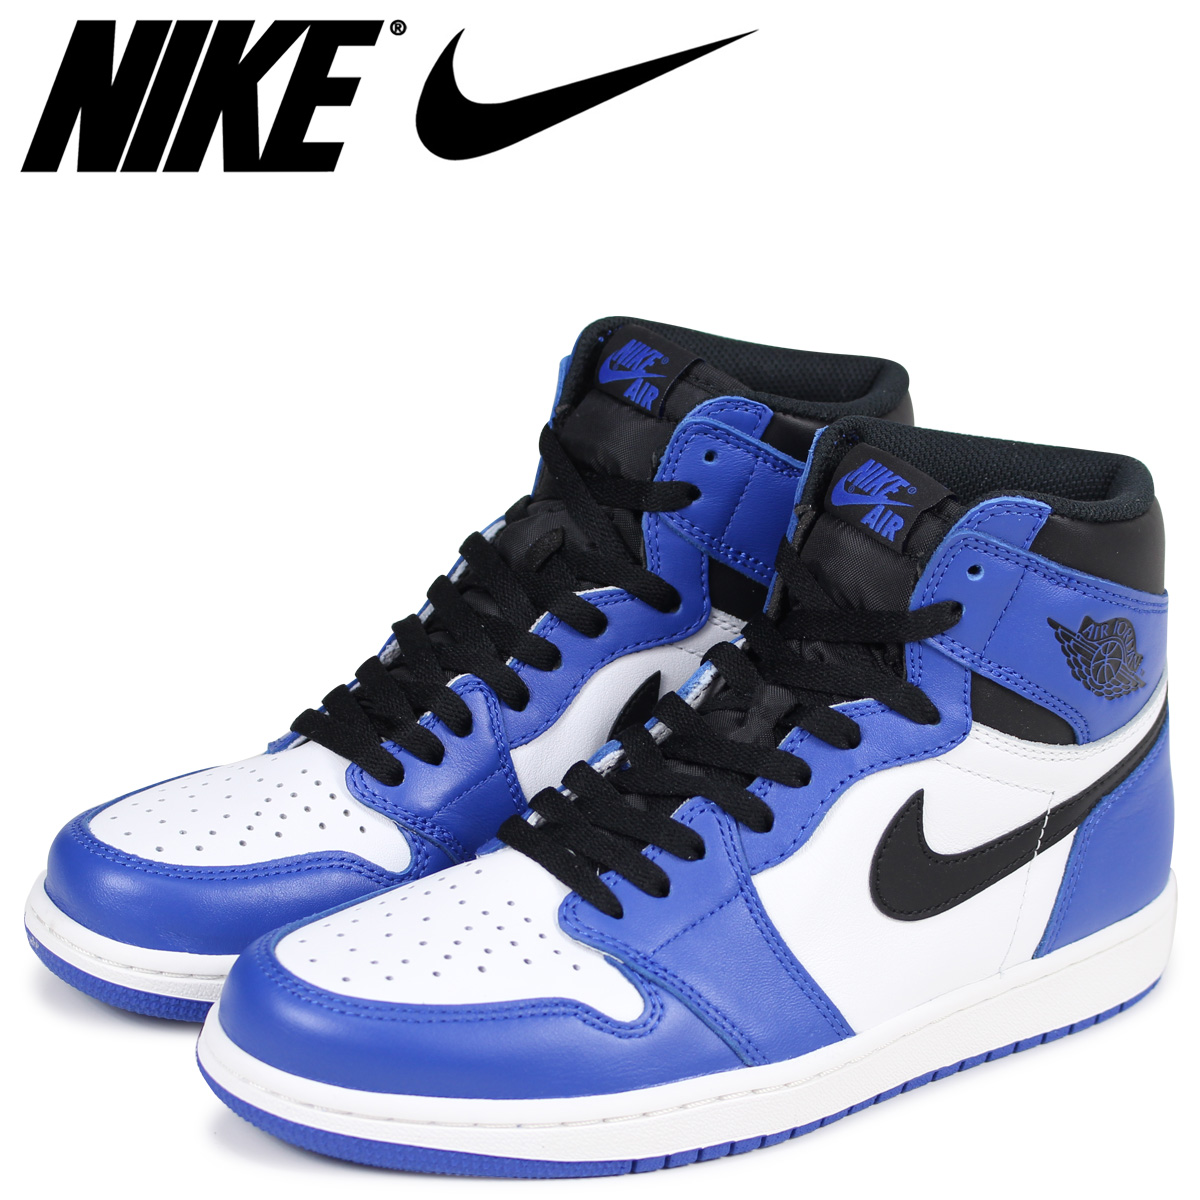 0fef413f10c6ec NIKE Nike Air Jordan 1 nostalgic high sneakers men AIR JORDAN 1 RETRO HIGH  OG GAME ROYAL 555